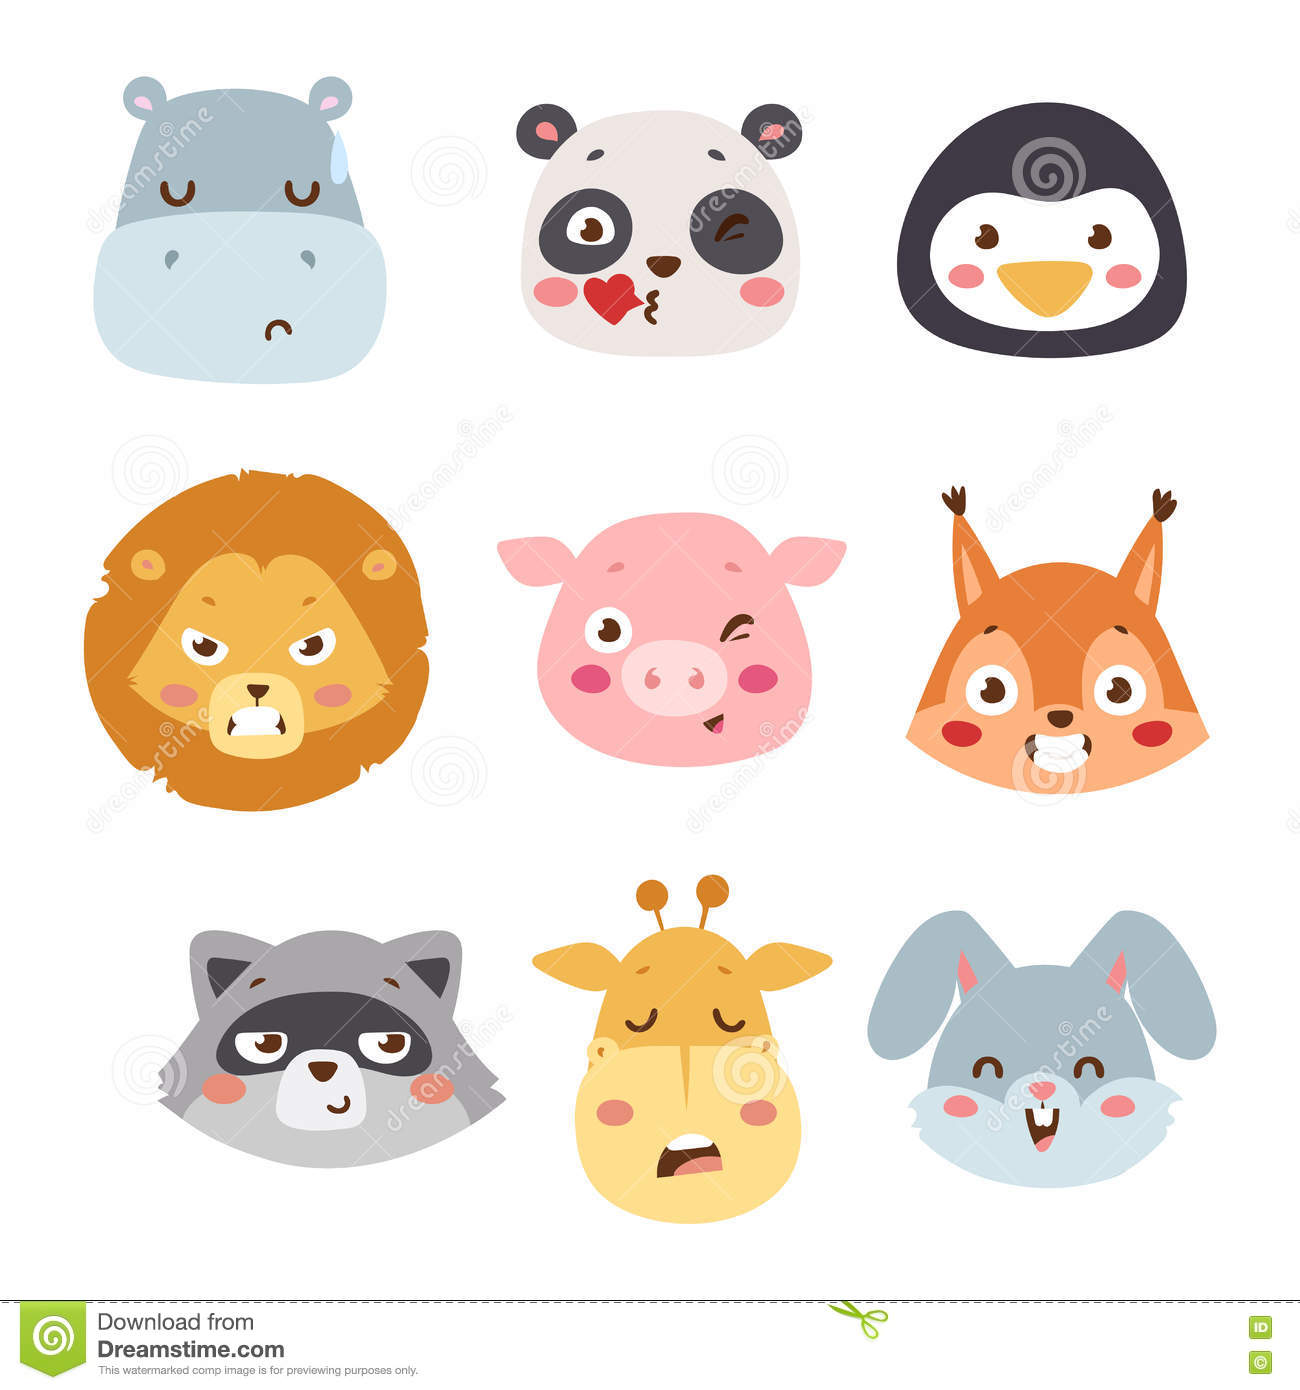 Avatar 2 Animals: Animal Emotion Avatar Vector Illustration Icon Stock